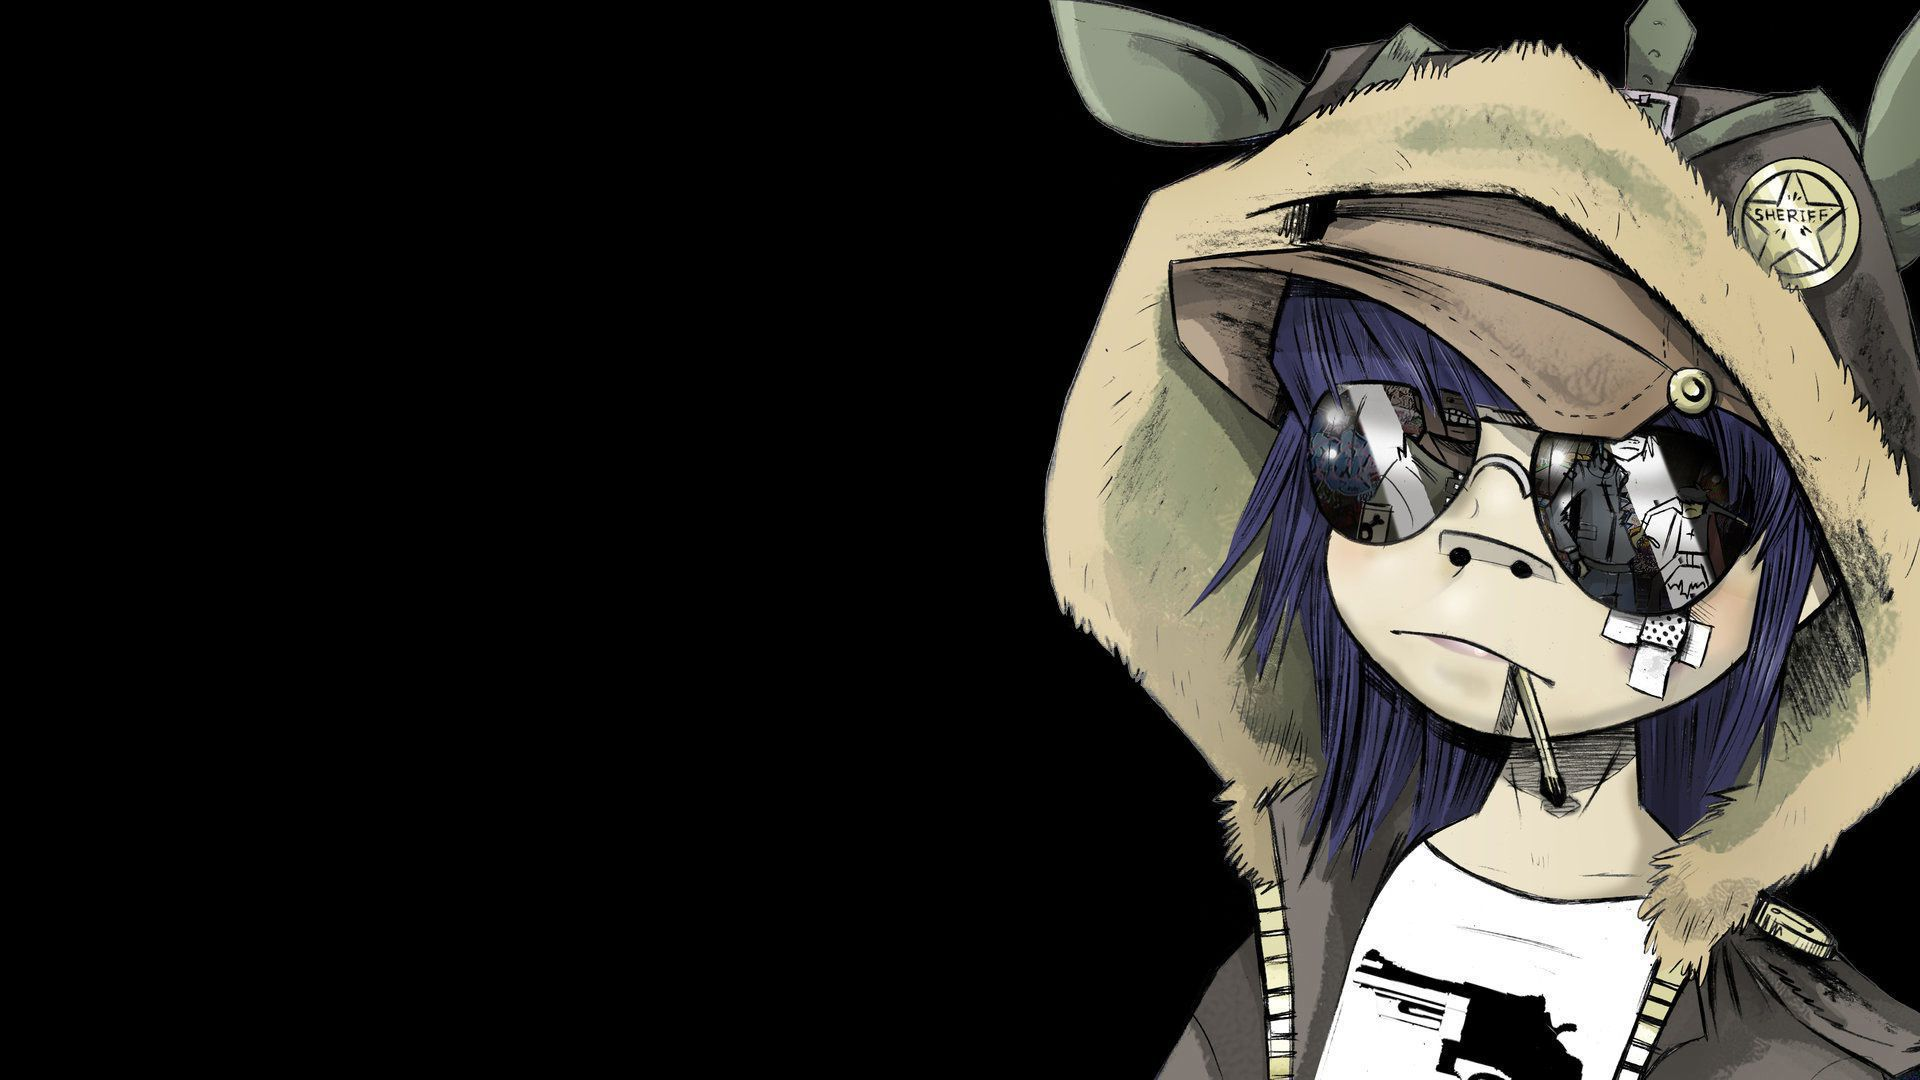 Fondos De Pantalla: Gorillaz Wallpapers Backgrounds